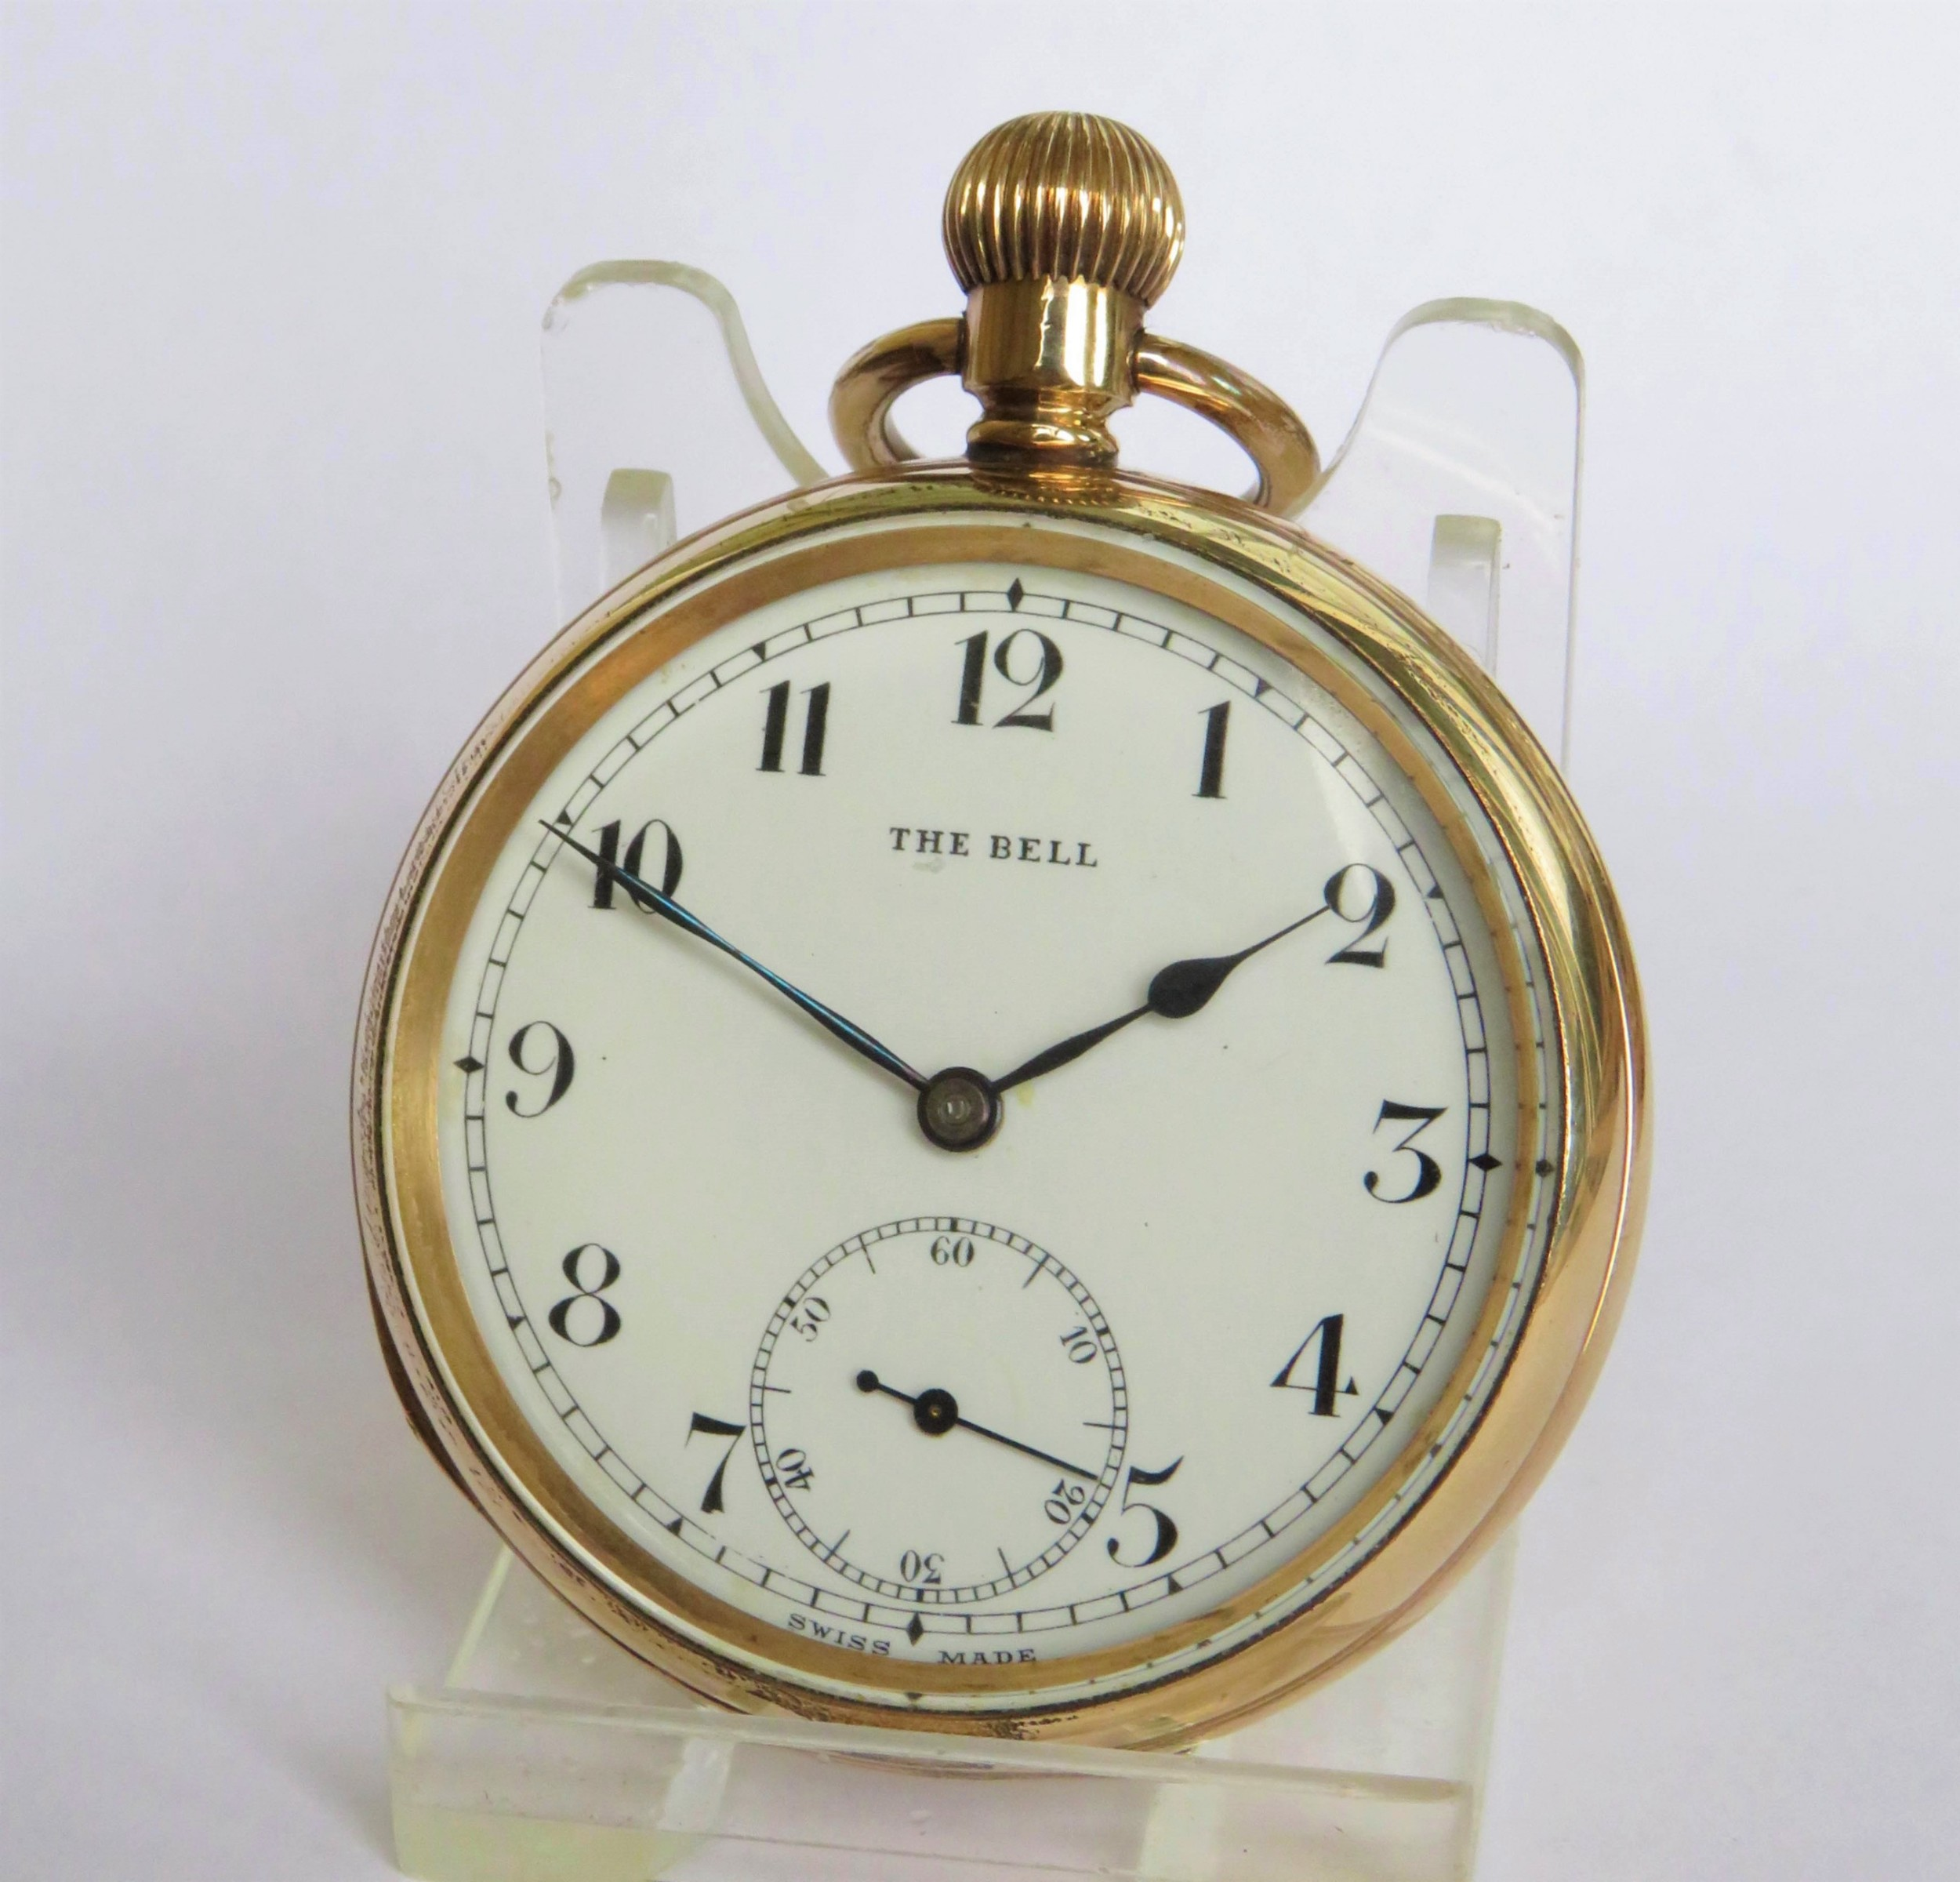 1940s 'the bell' pocket watch by quartier fils